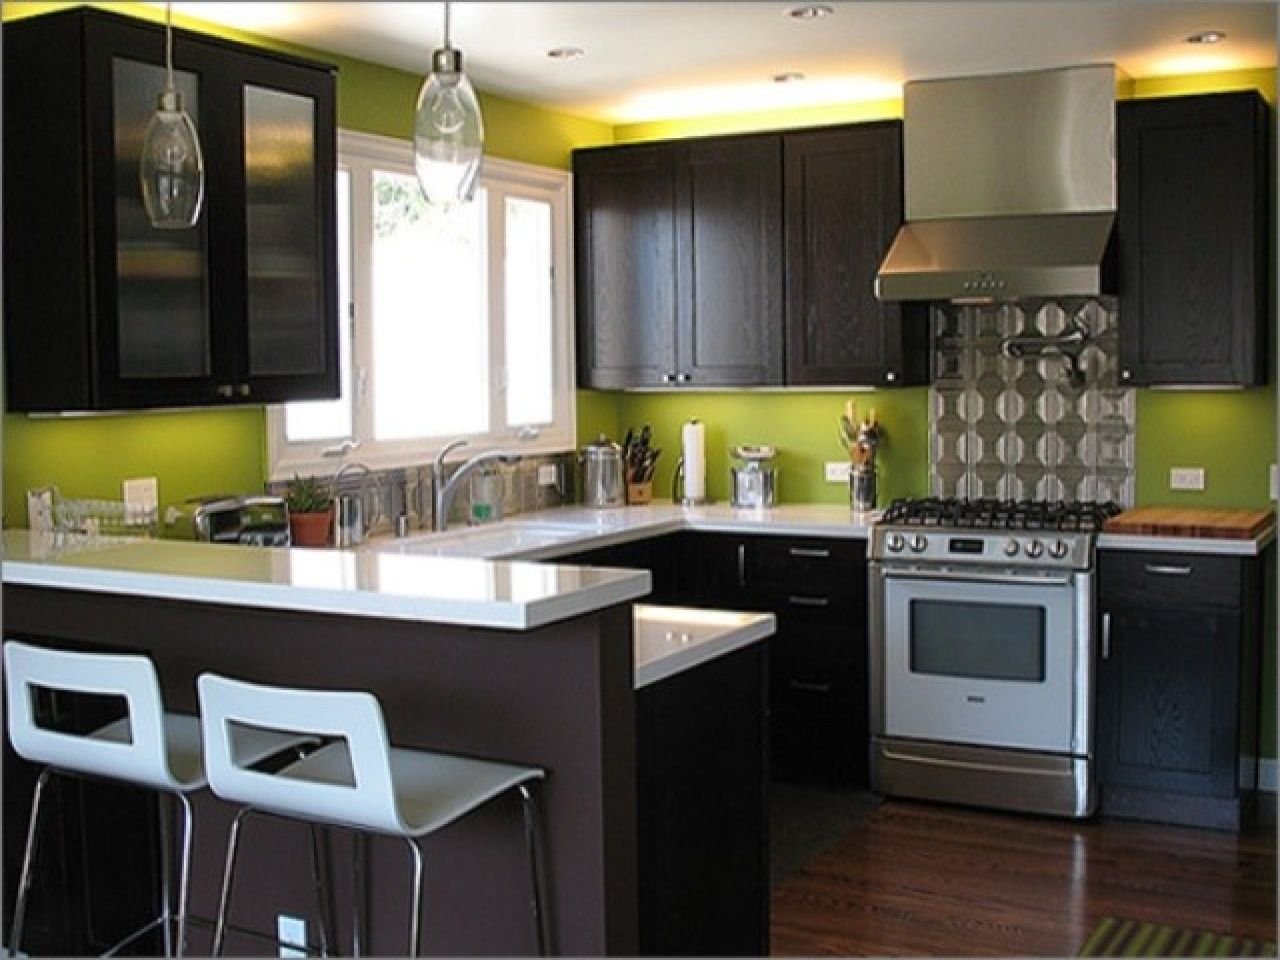 lime-green-modern-kitchen-cabinets-purple-and-lime-green-kitchen-48f3dd5beb8f0c15.jpg